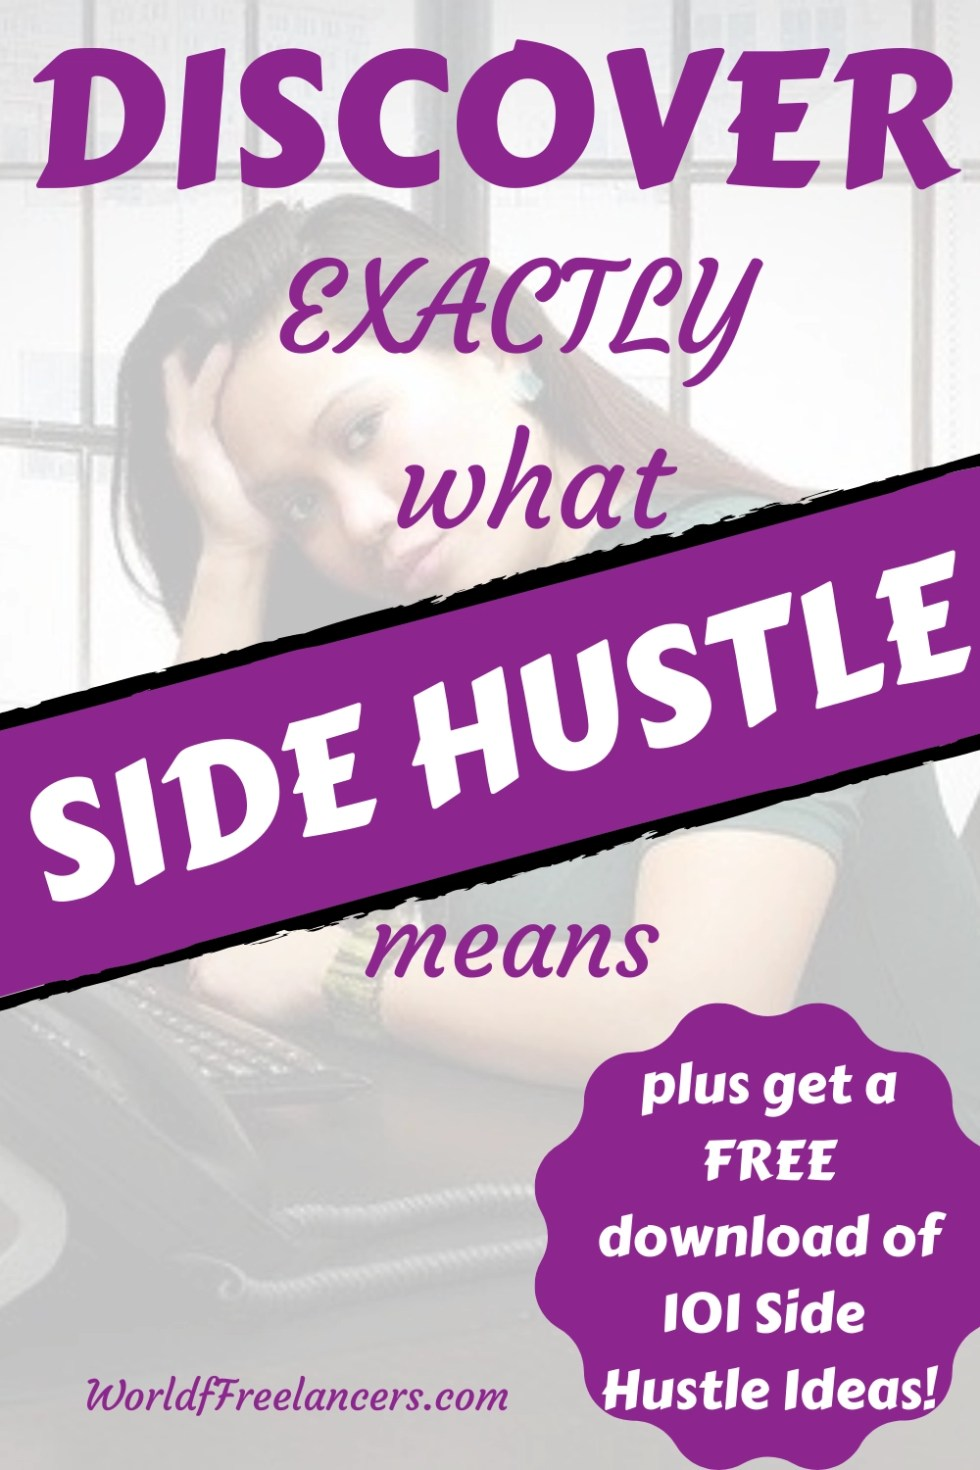 Pinterest image - Woman with long, dark hair sitting at desk with computer, with her head in hand with purple, black and white text saying discover exactly what side hustle means